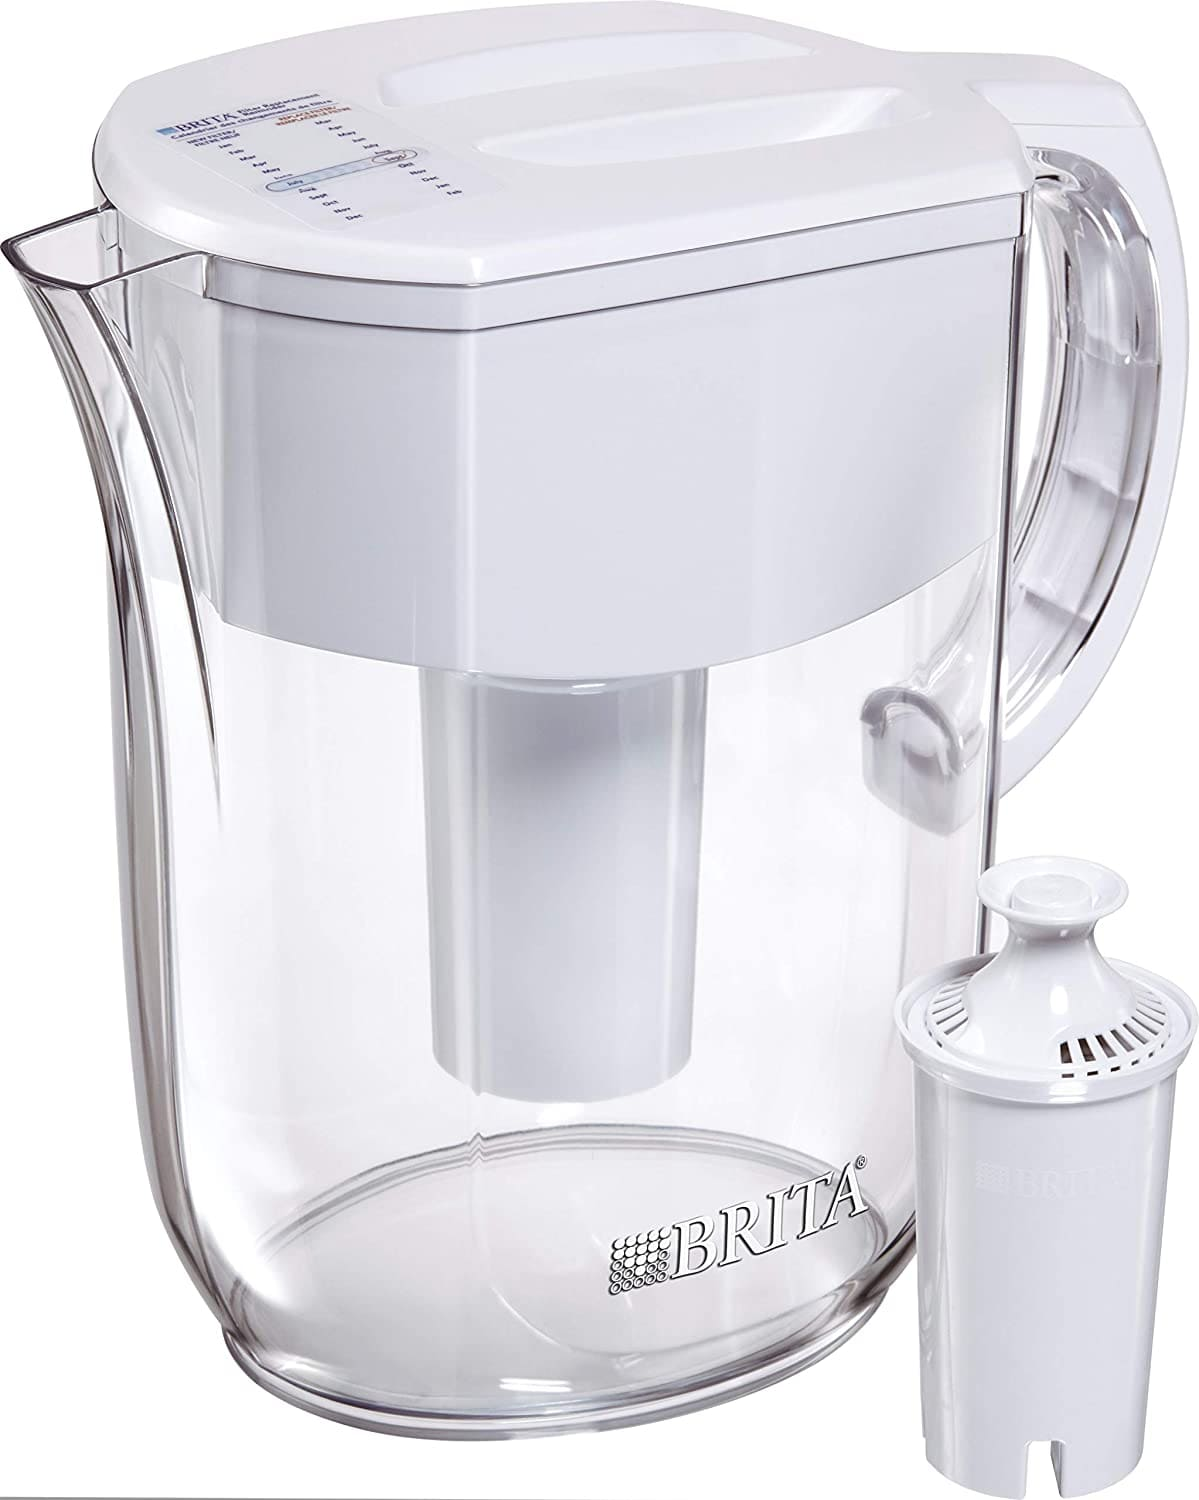 A clear water pitcher with a filter next to it.